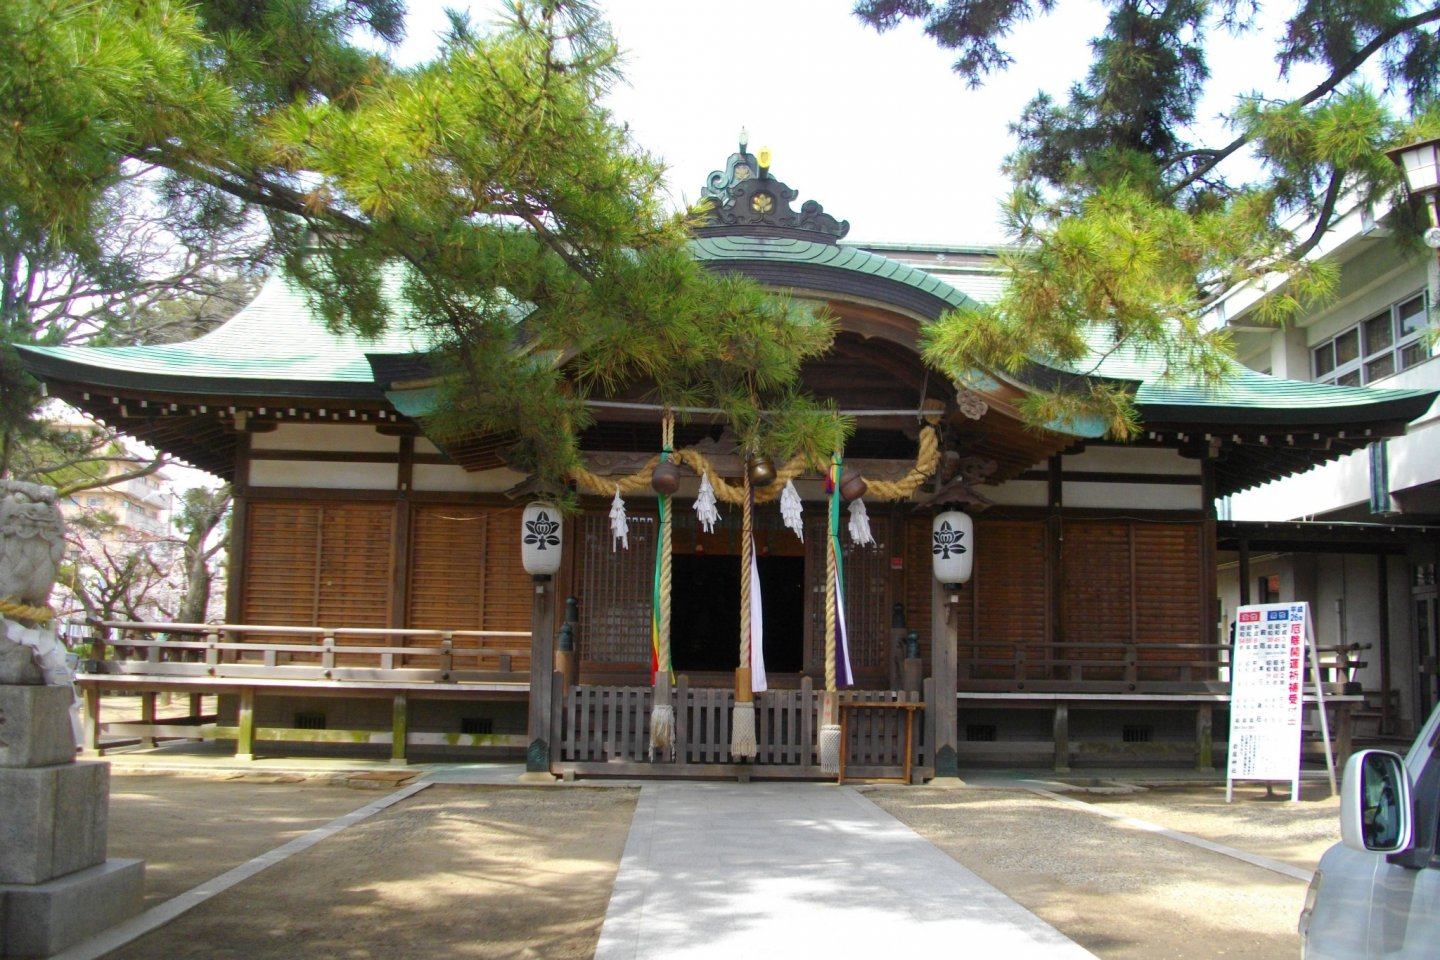 The shrine viewed from the front